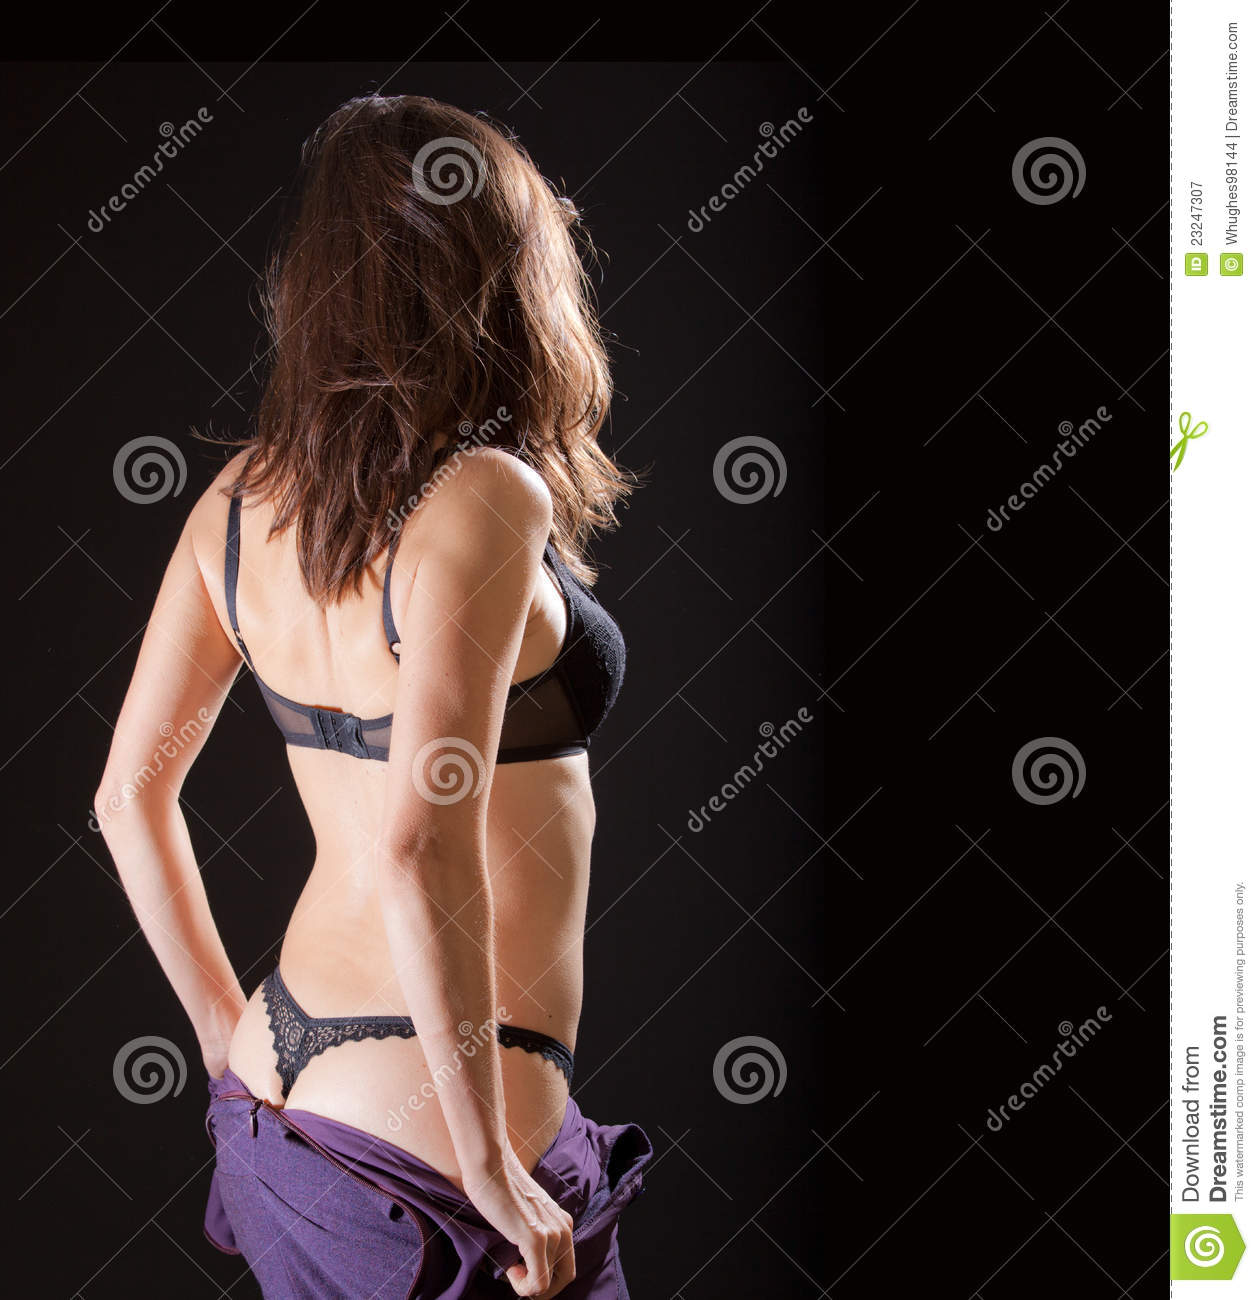 Removing dress pictures